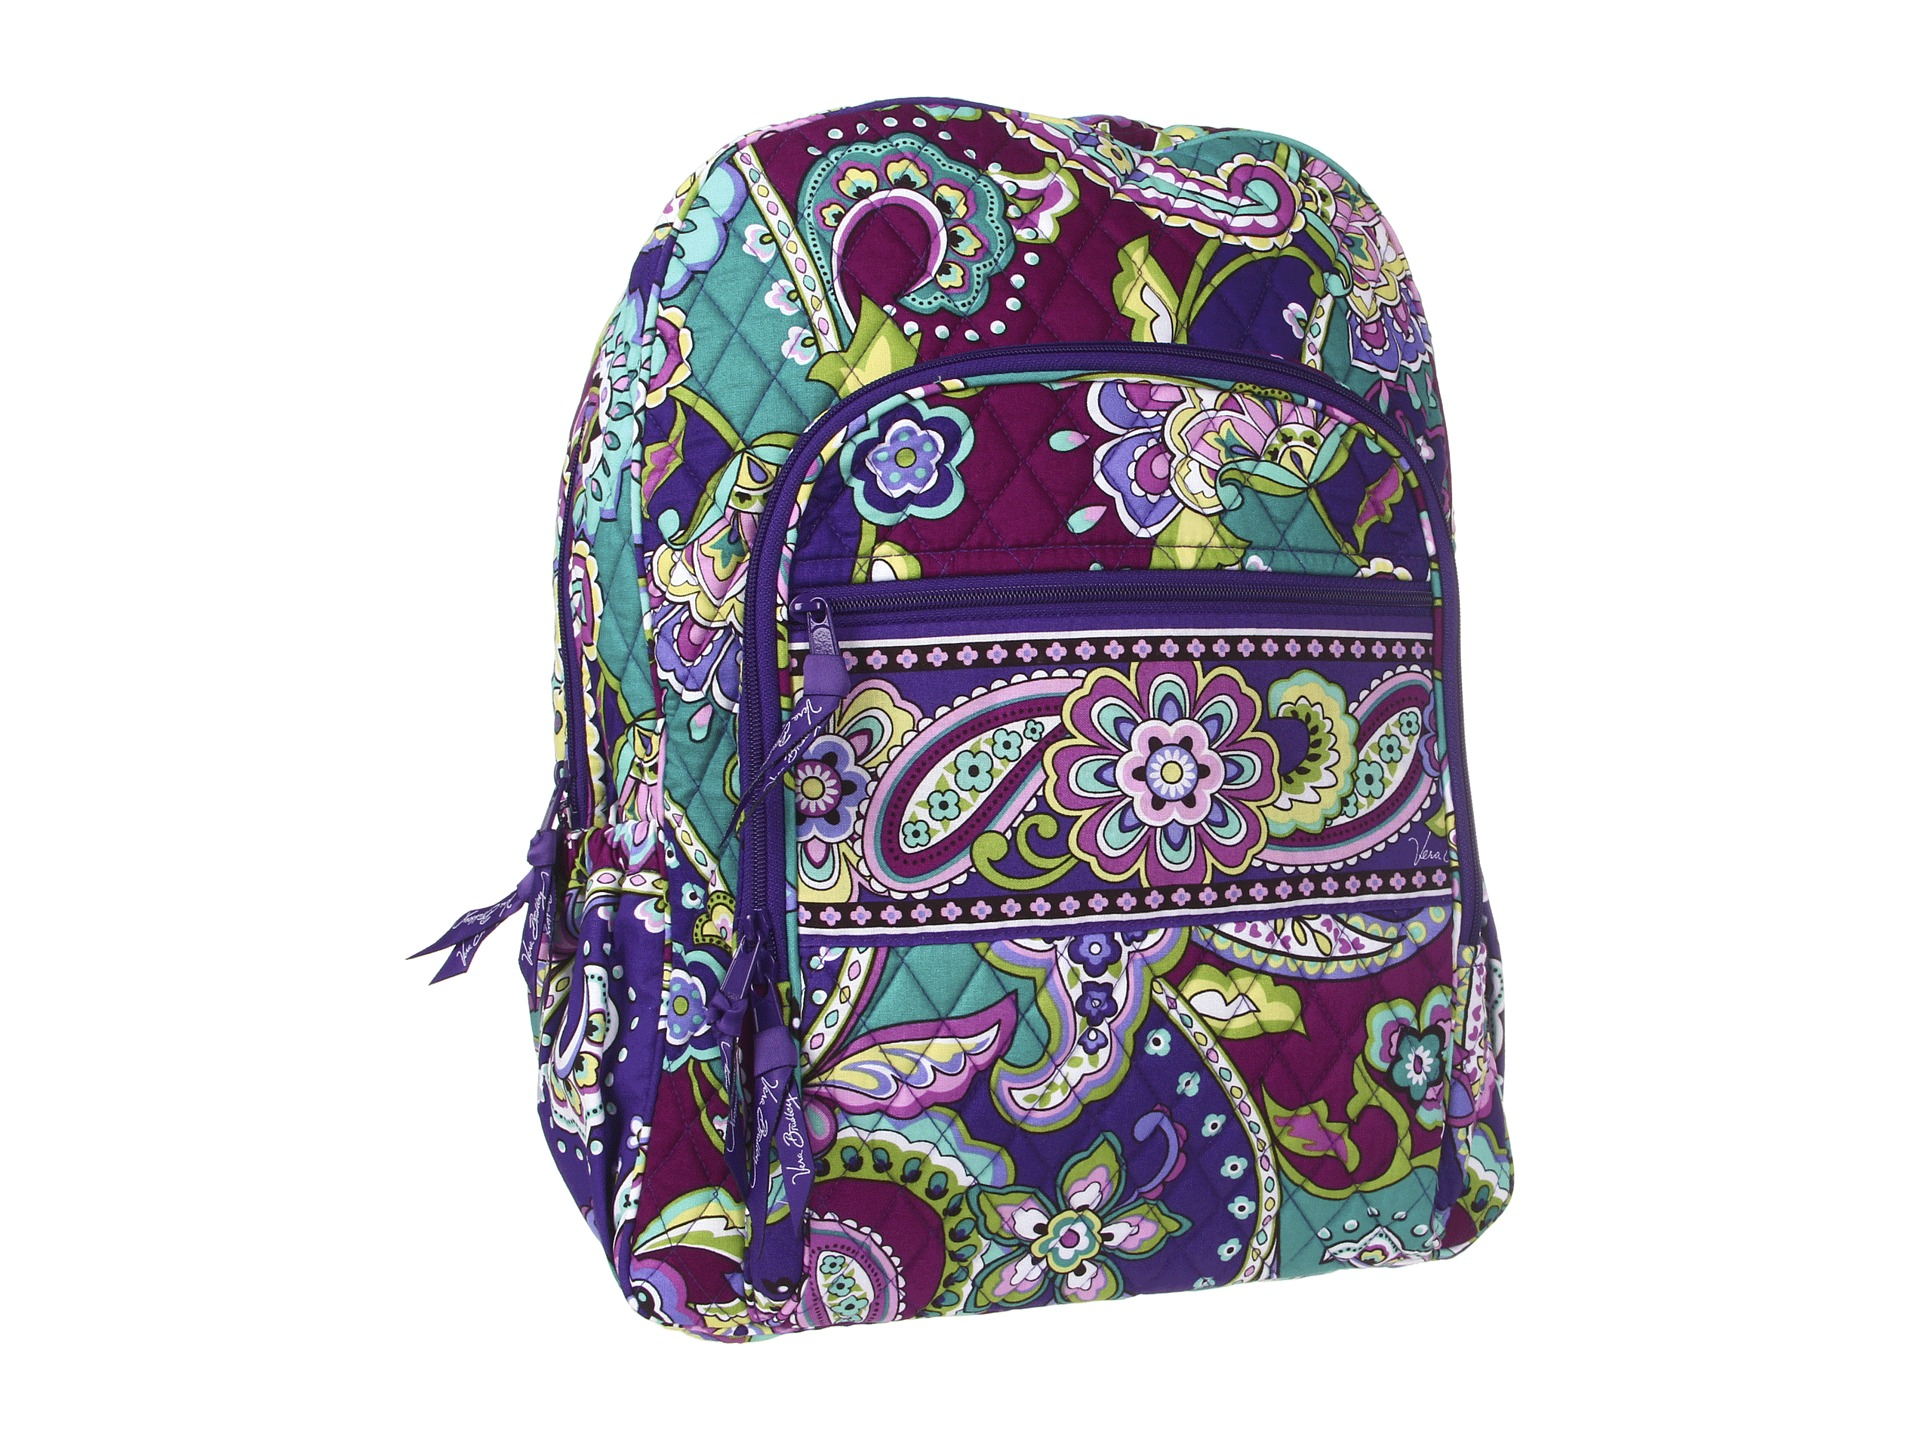 FREE COMMUTE: The Vera Bradley Iconic Campus Backpack is made from our Vera Bradley Lighten Up Grande Laptop Backpack, Polyester. by Vera Bradley. $ - $ $ 56 $ 98 Prime. FREE Shipping on eligible orders. Some colors are Prime eligible. 4 .